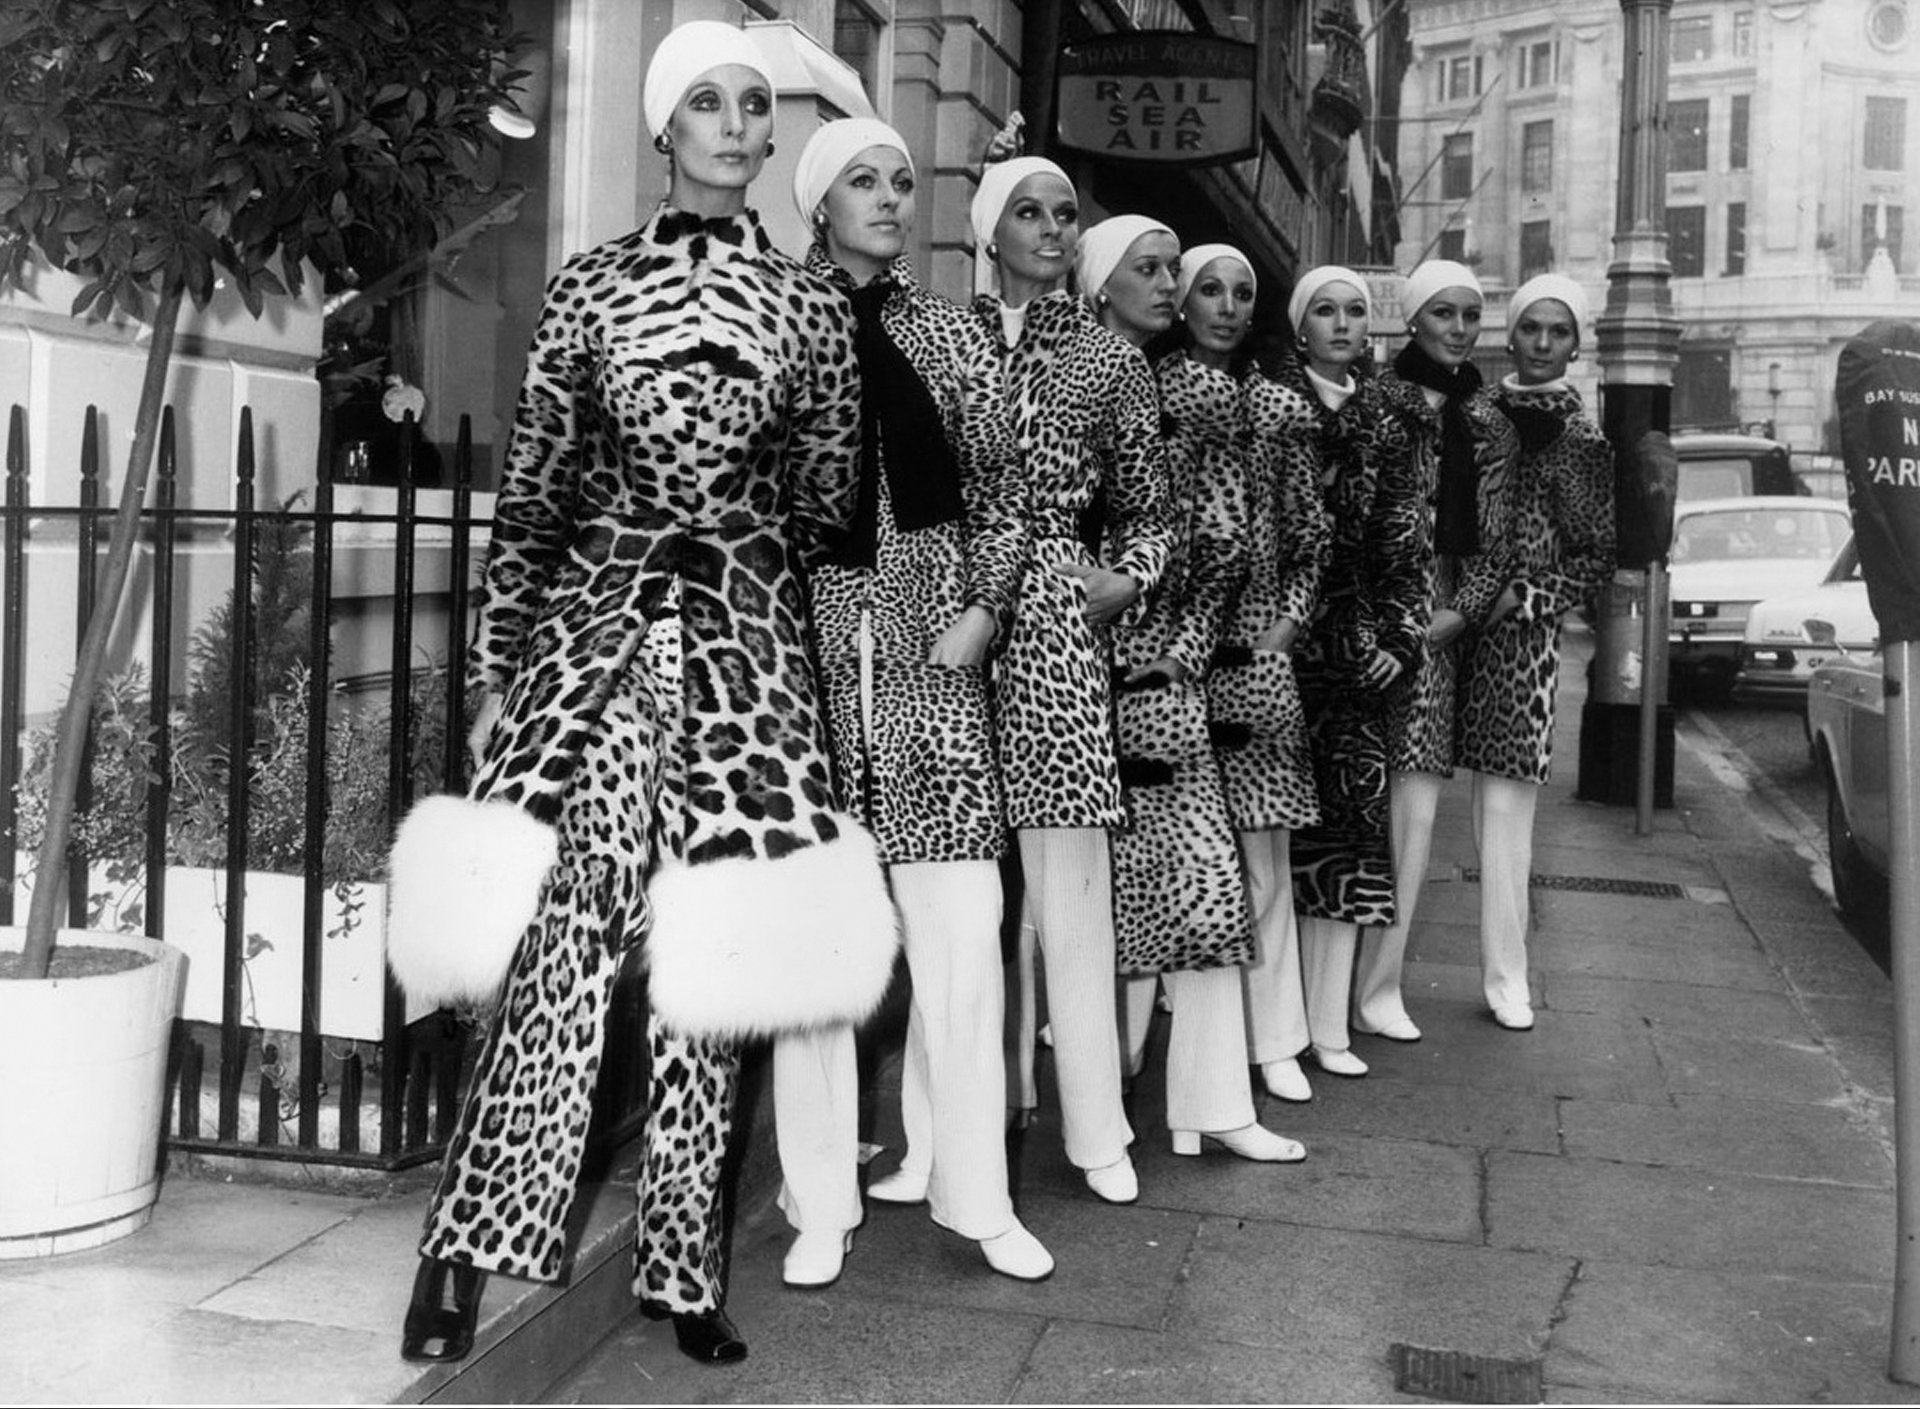 animalier tendenza christian dior